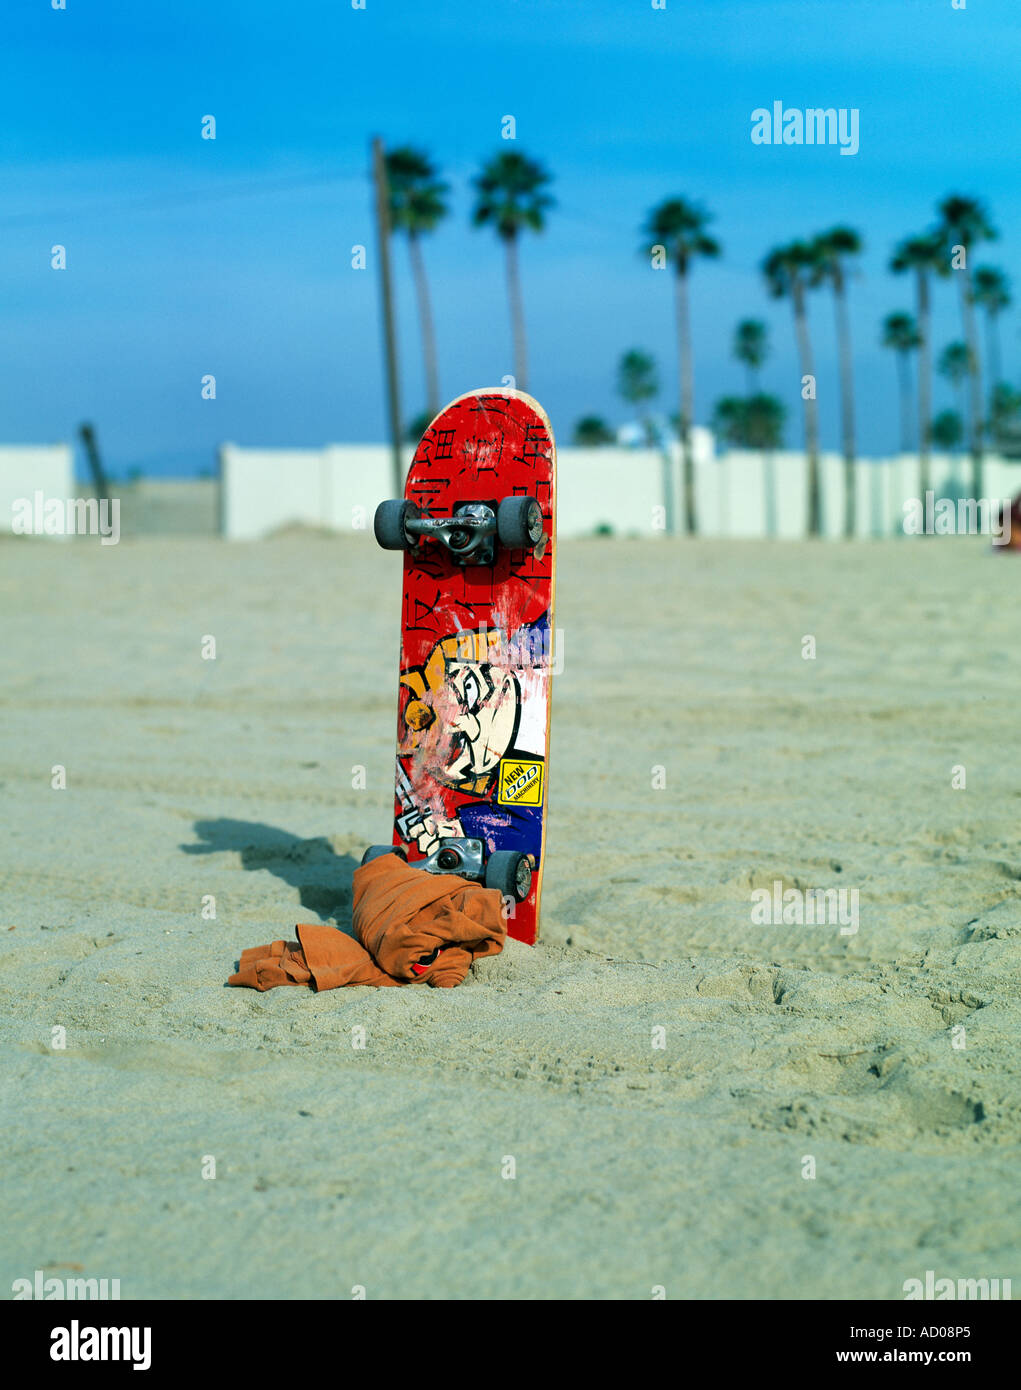 skate board and towel standing upright in the the snad, at venice beach  u.s. - Stock Image